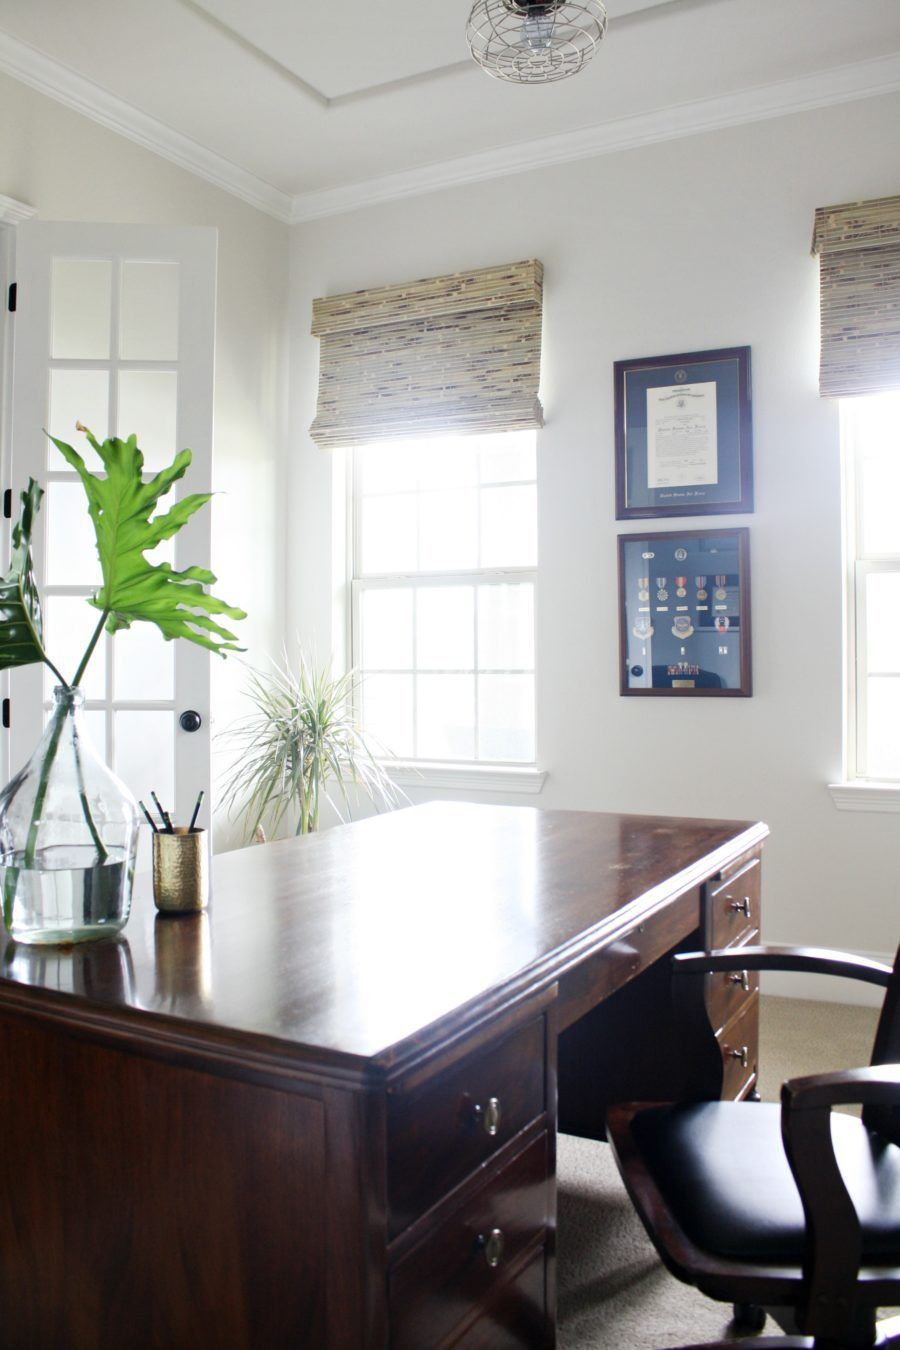 Home Office Get a Polished Look with Built-ins and Bamboo Shades ...